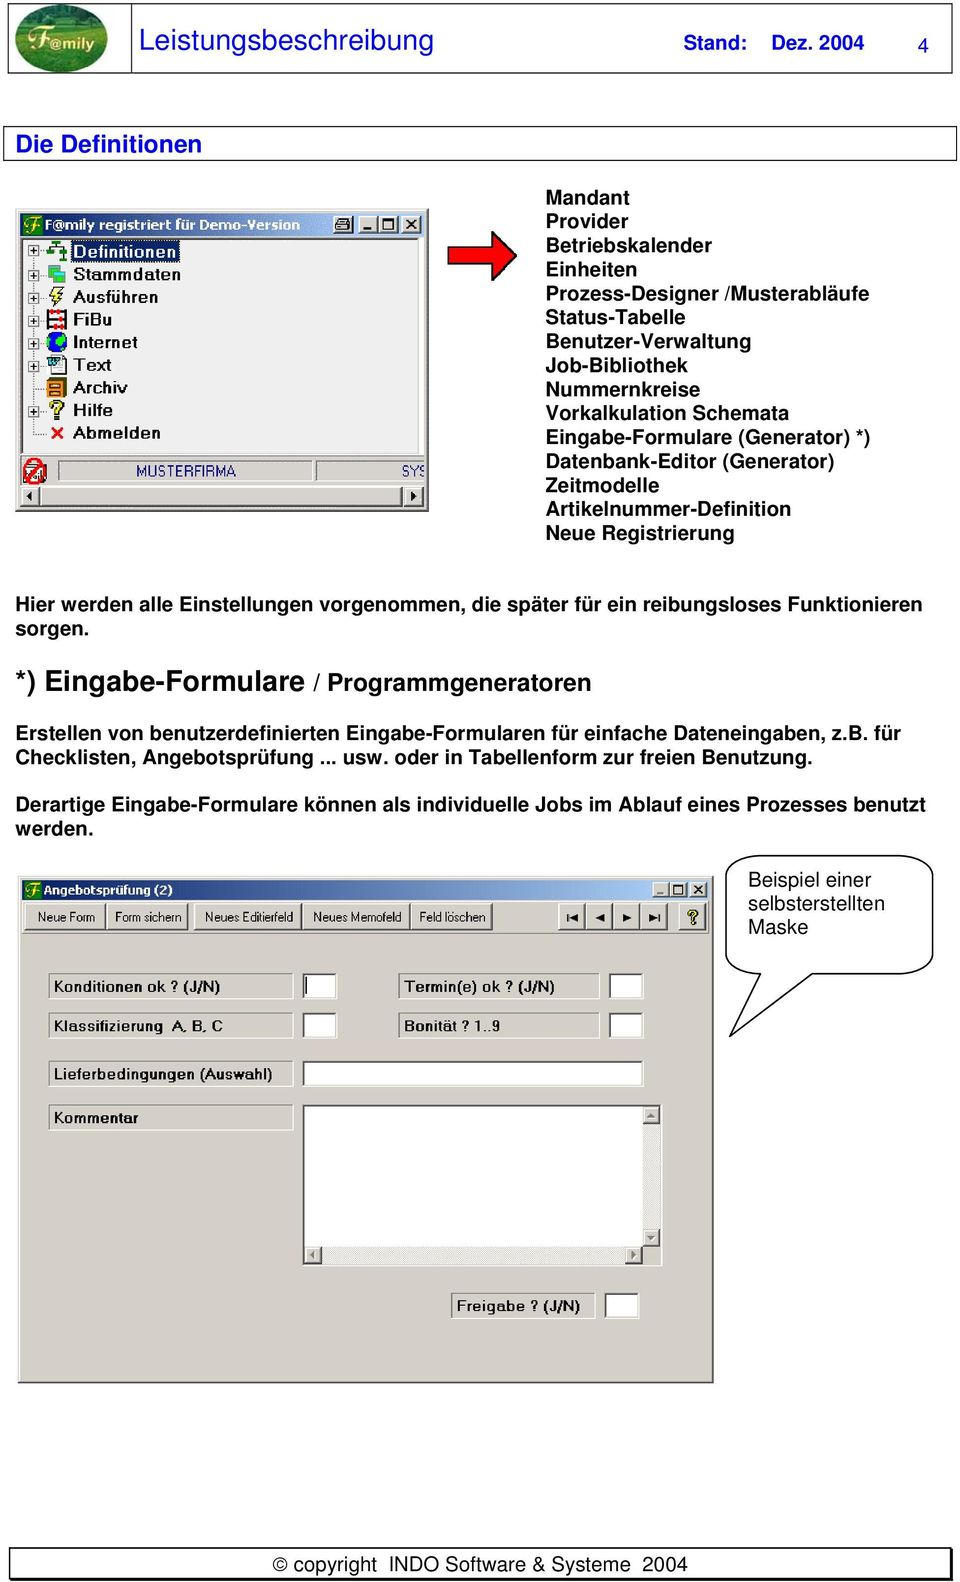 Tolle Formularvorlage Abmelden Ideen - Entry Level Resume Vorlagen ...